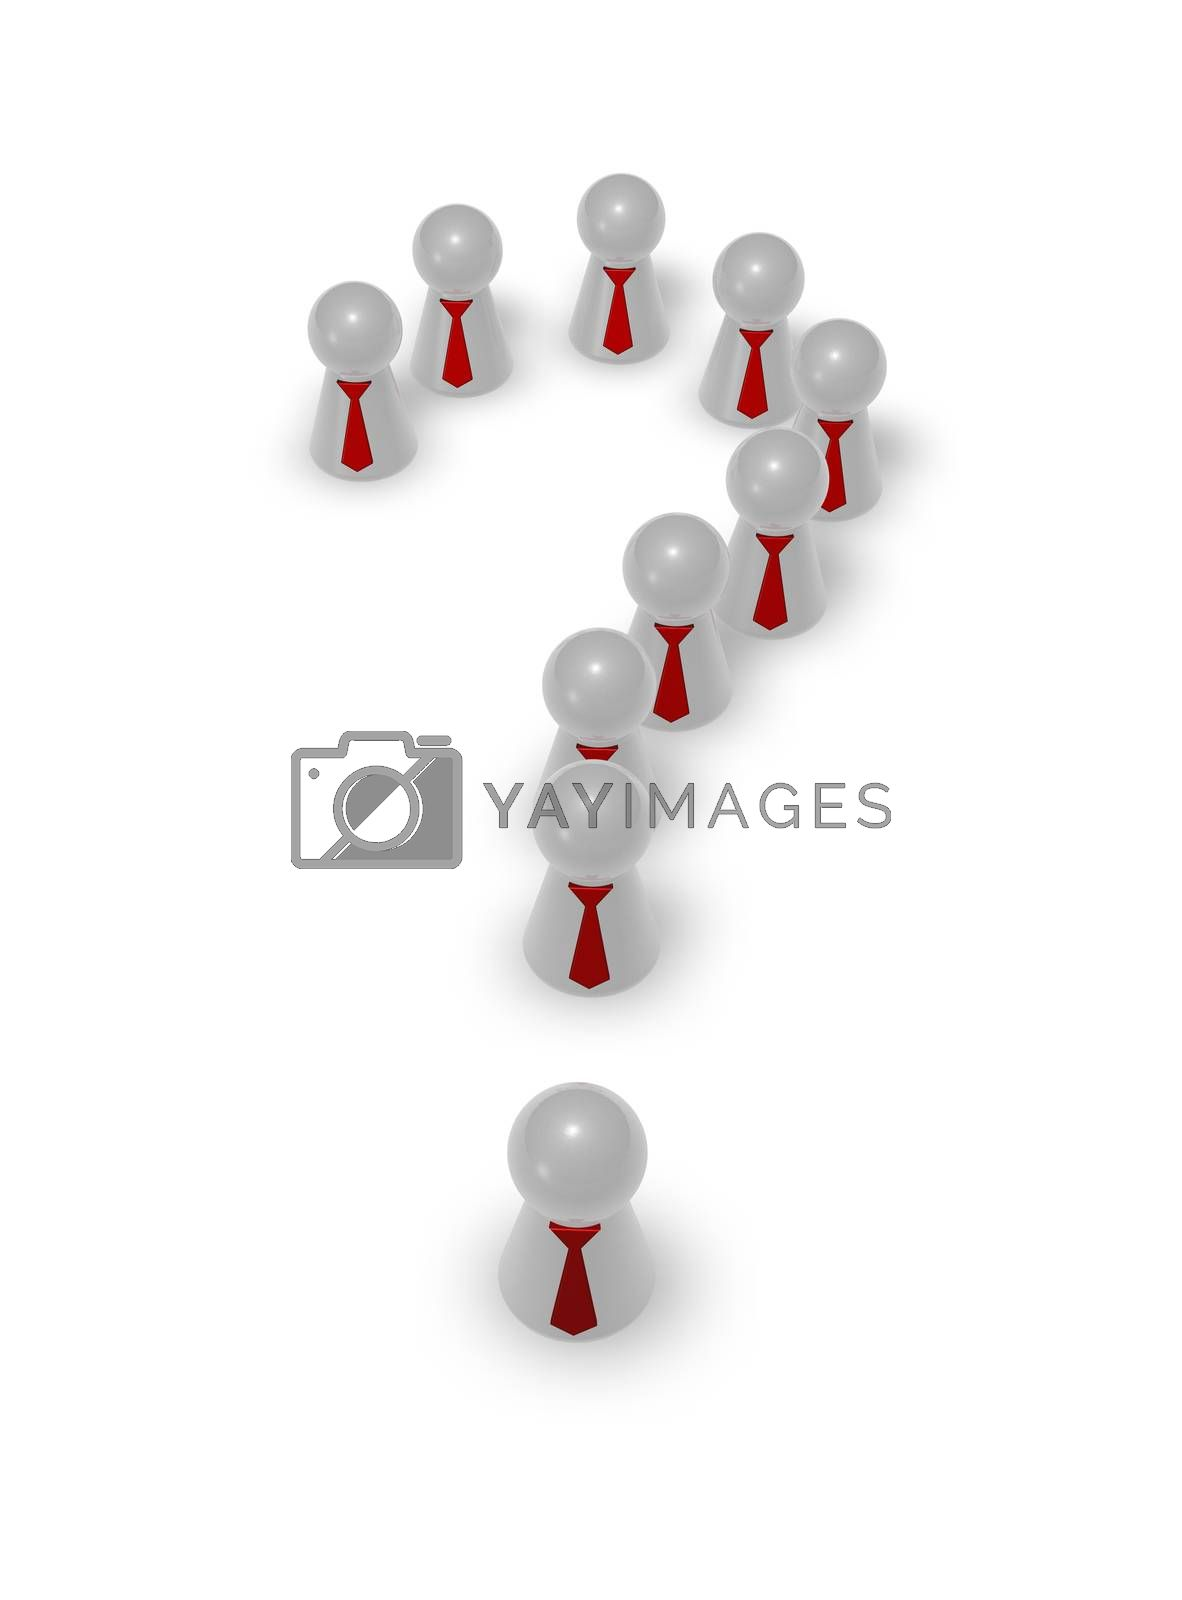 play figures with tie making shape of question mark - 3d illustration